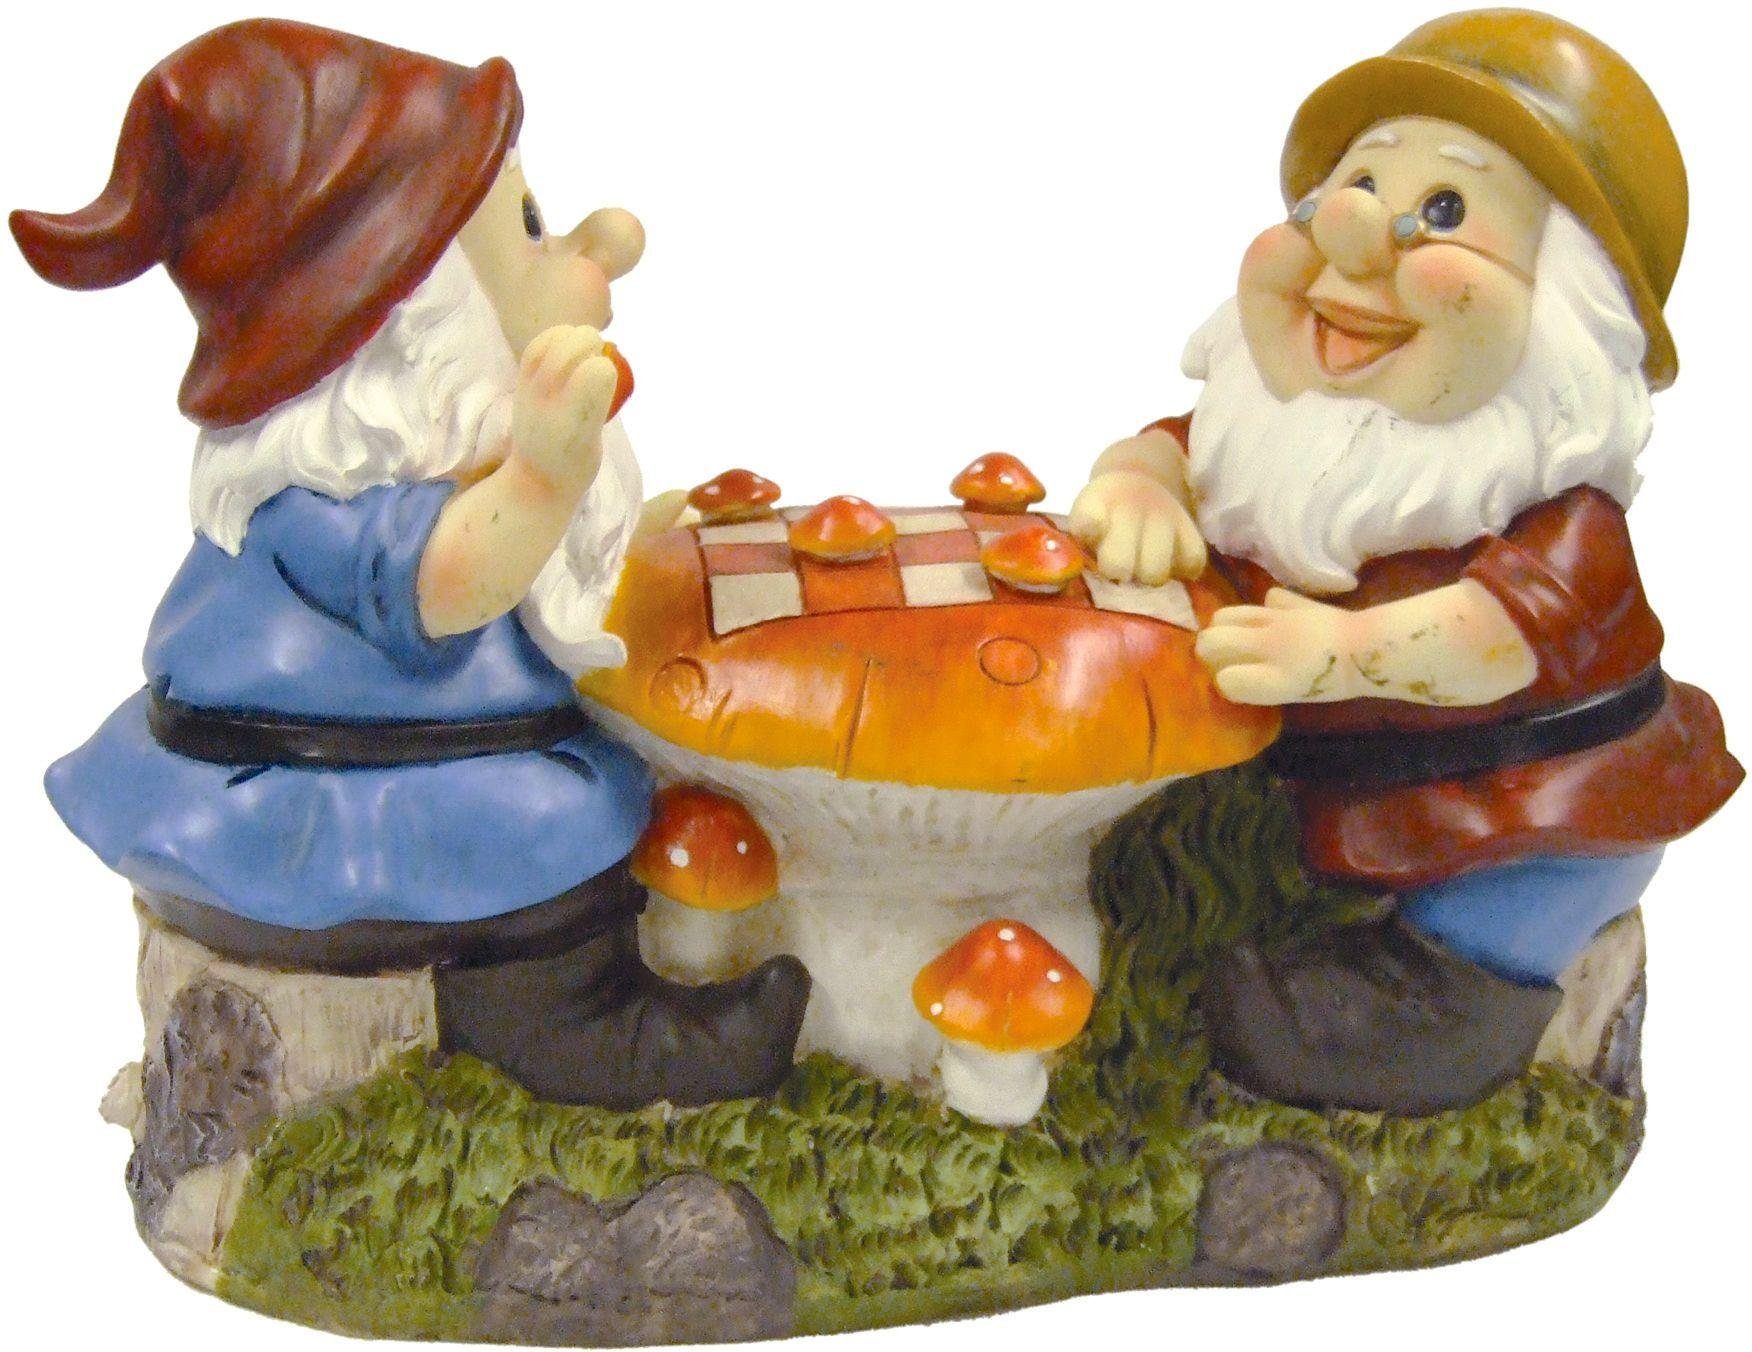 Chess Playing Gnome Garden Ornament.